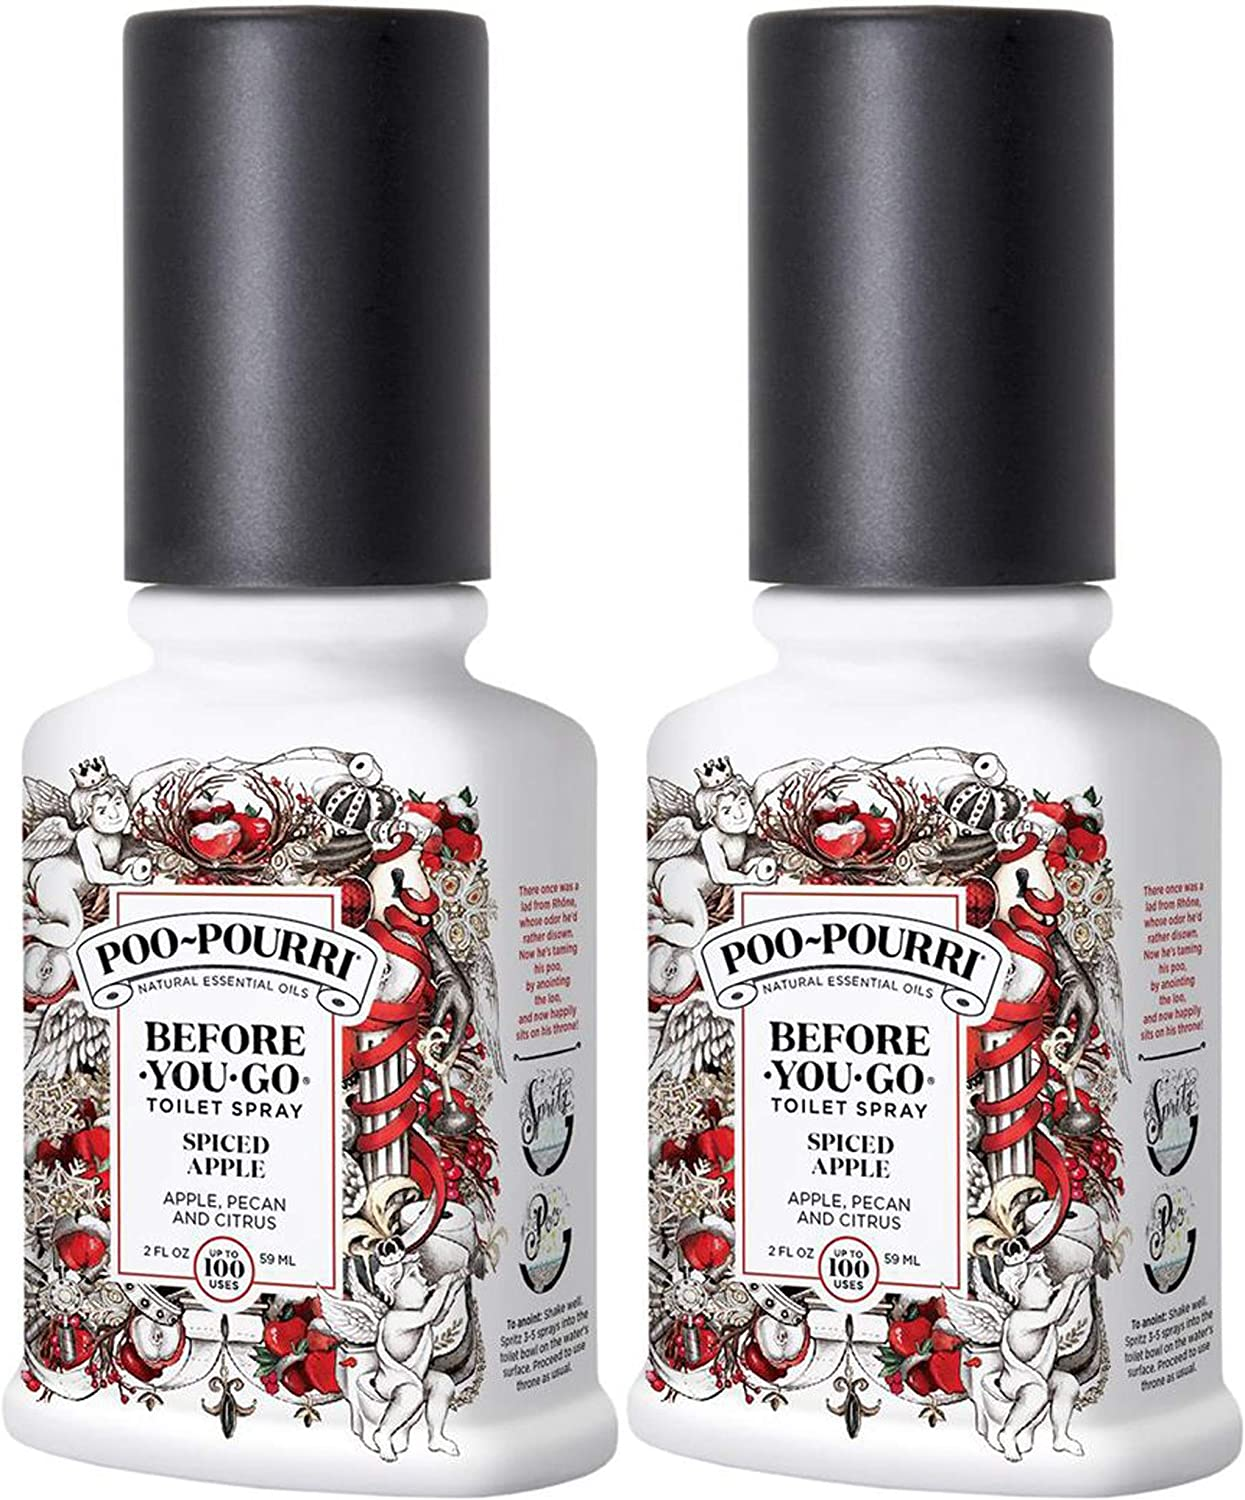 Poo-Pourri Before You Go Toilet Spray Spiced Apple 2 Ounce, 2 Pack